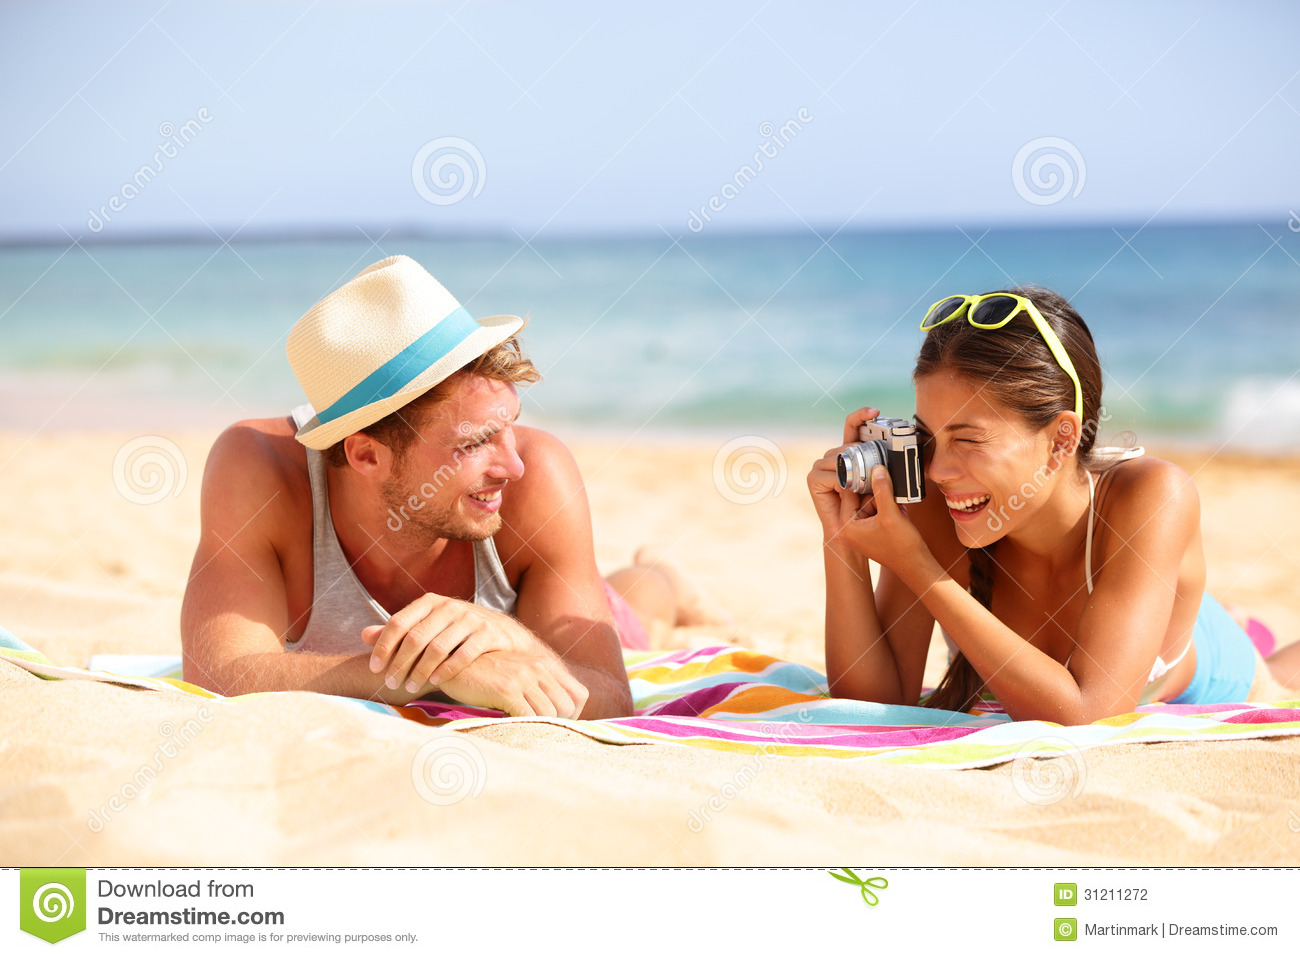 Beach fun couple travel - woman taking photo